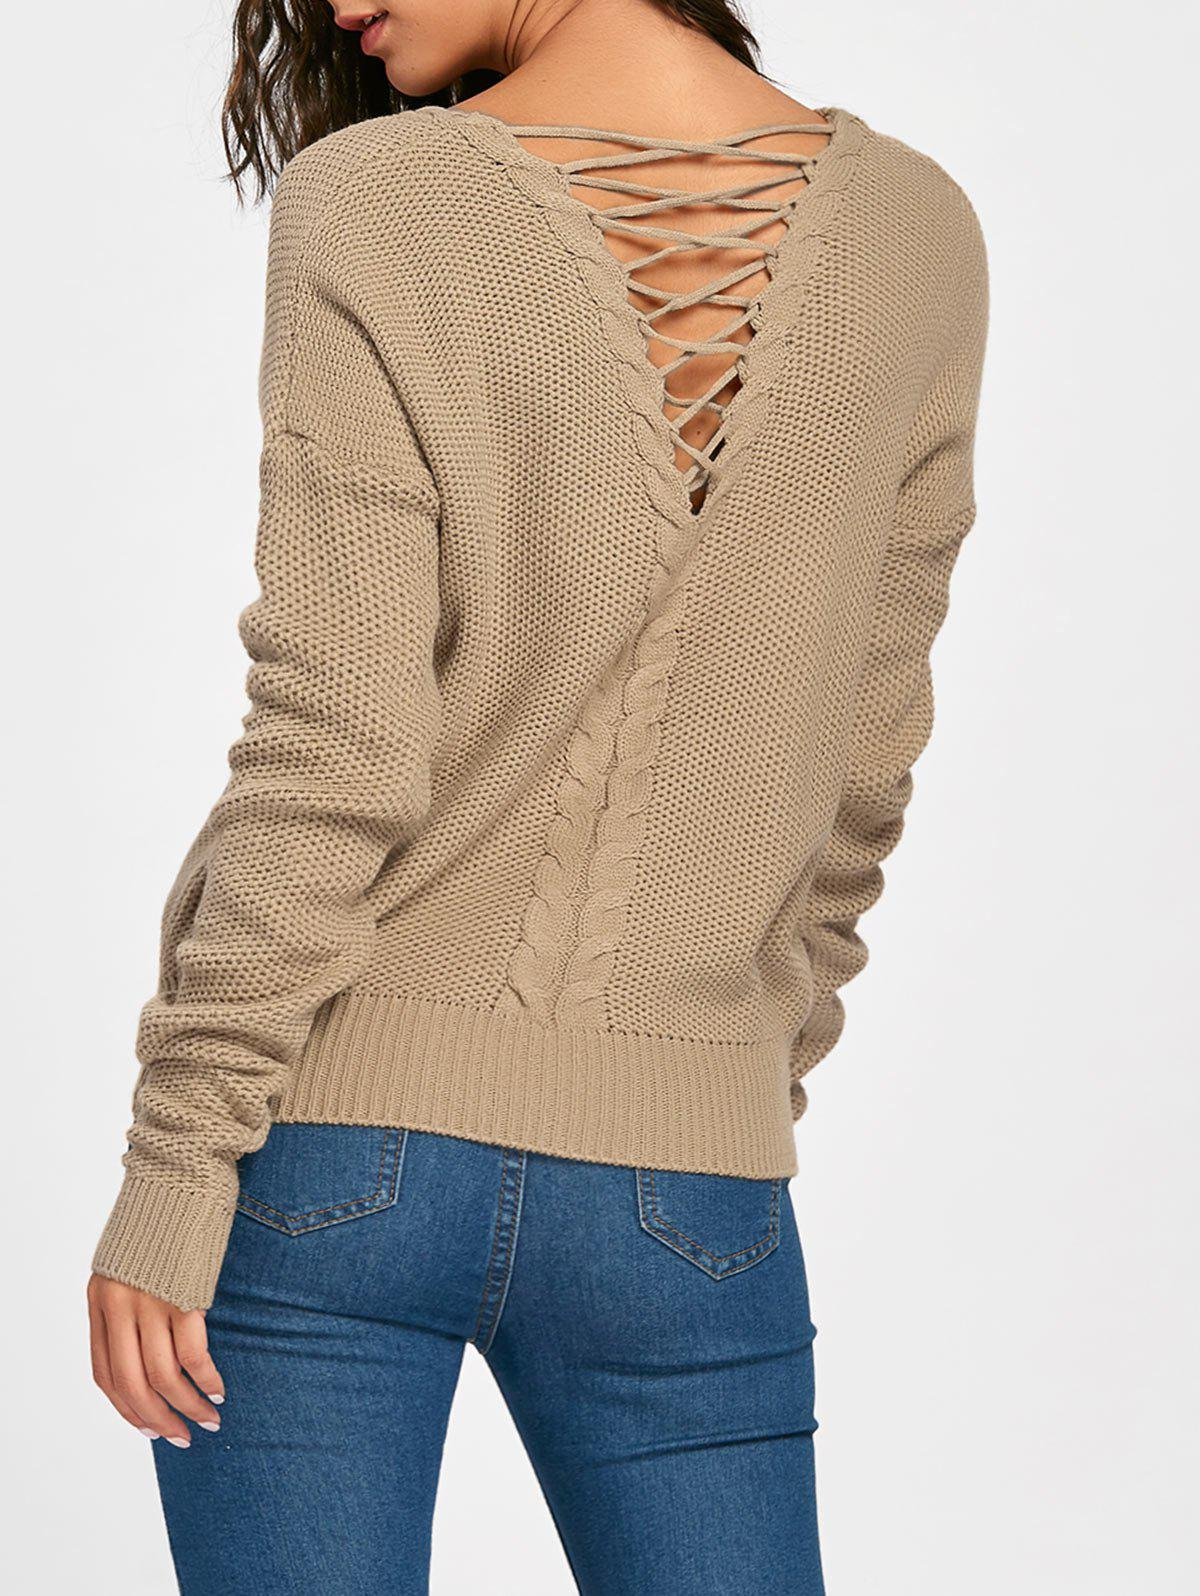 Back Lace Up Cable Knitted Sweater lace up back sweater